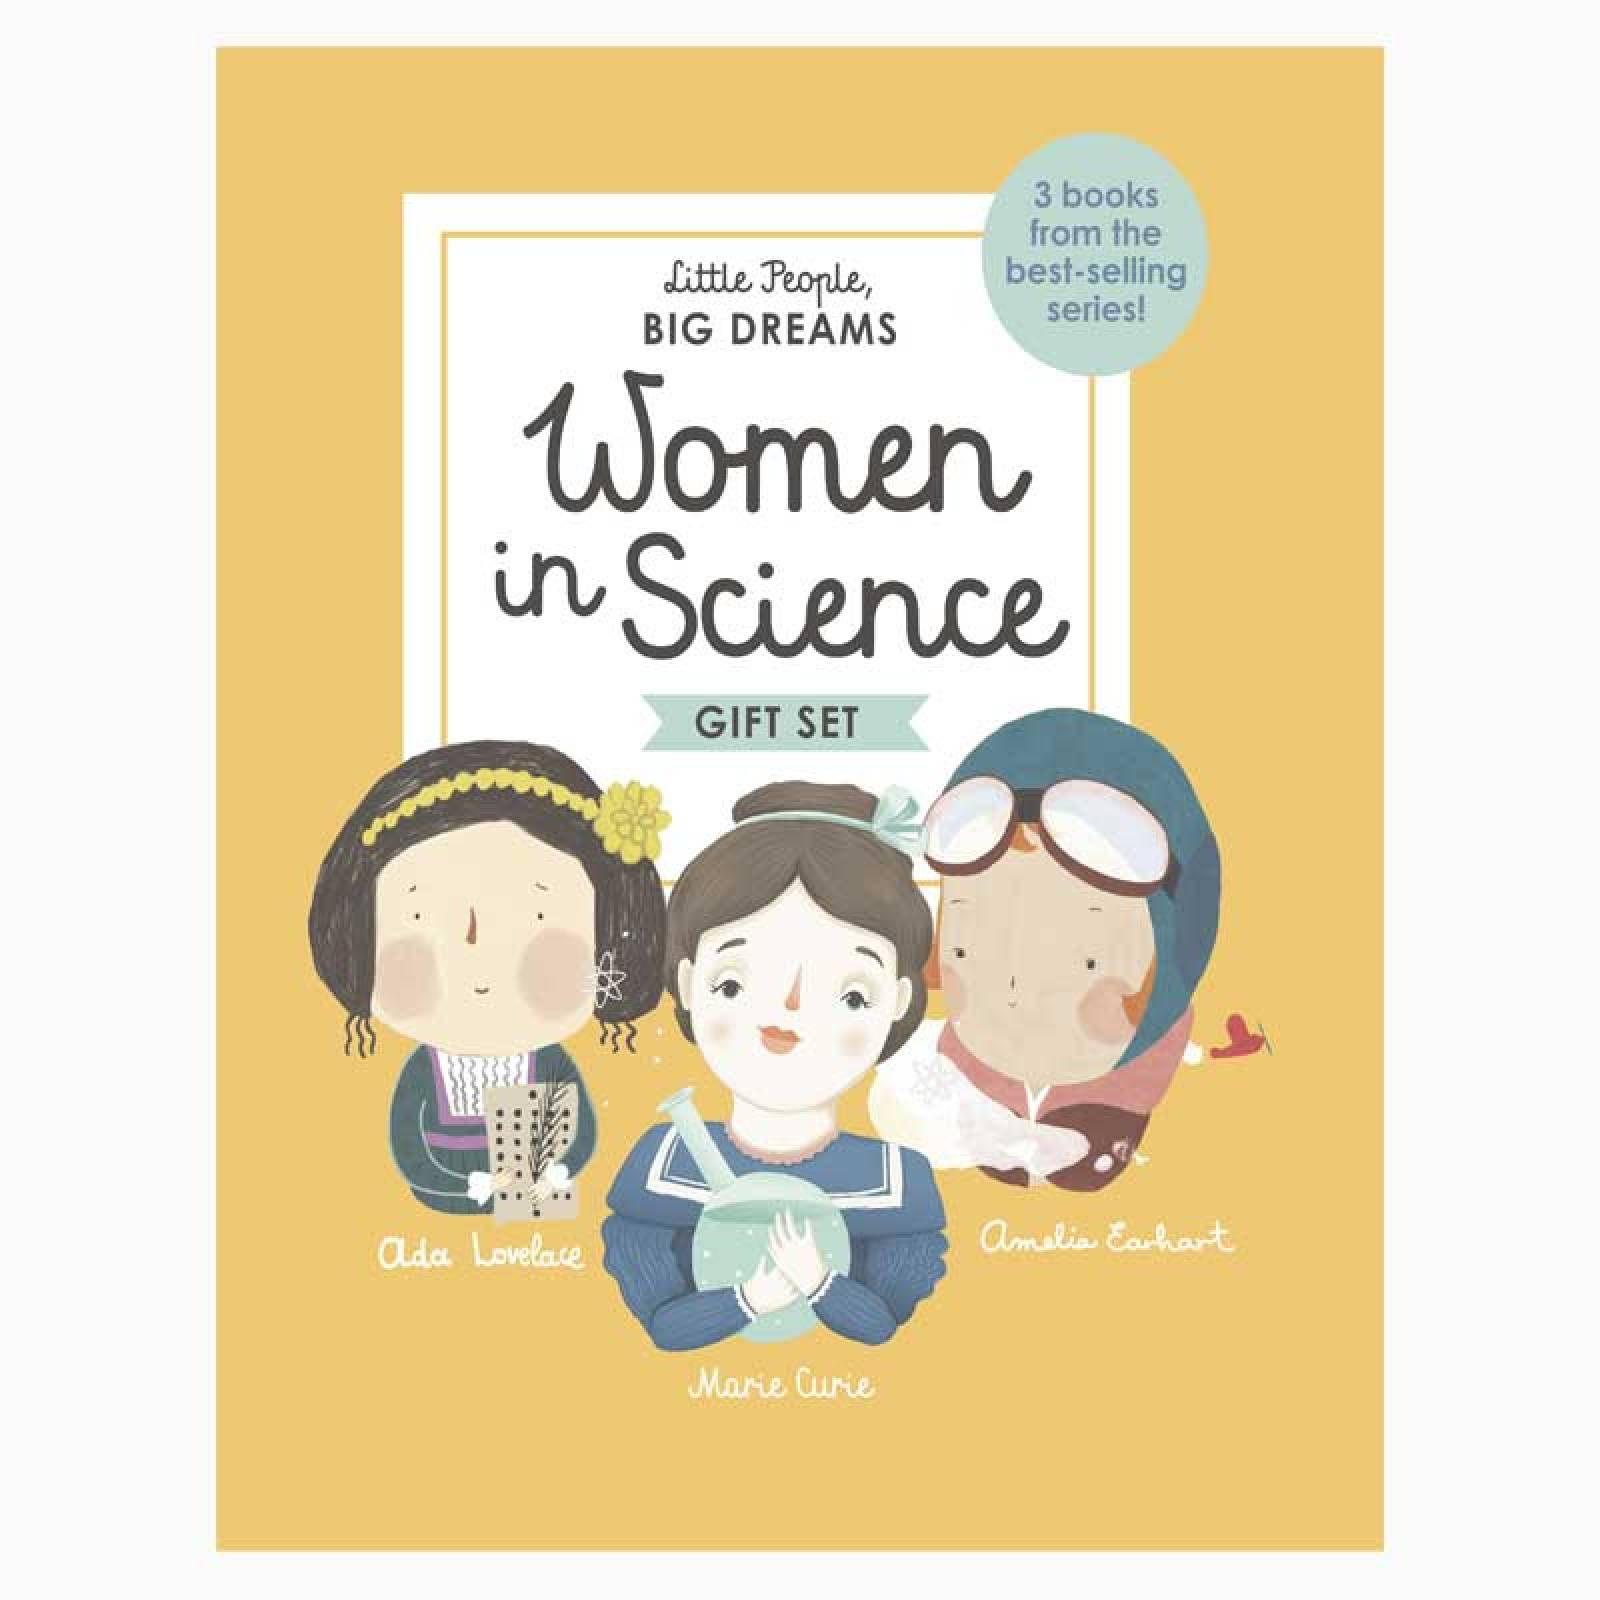 Women In Science - Boxed Set: Little People Big Dreams thumbnails